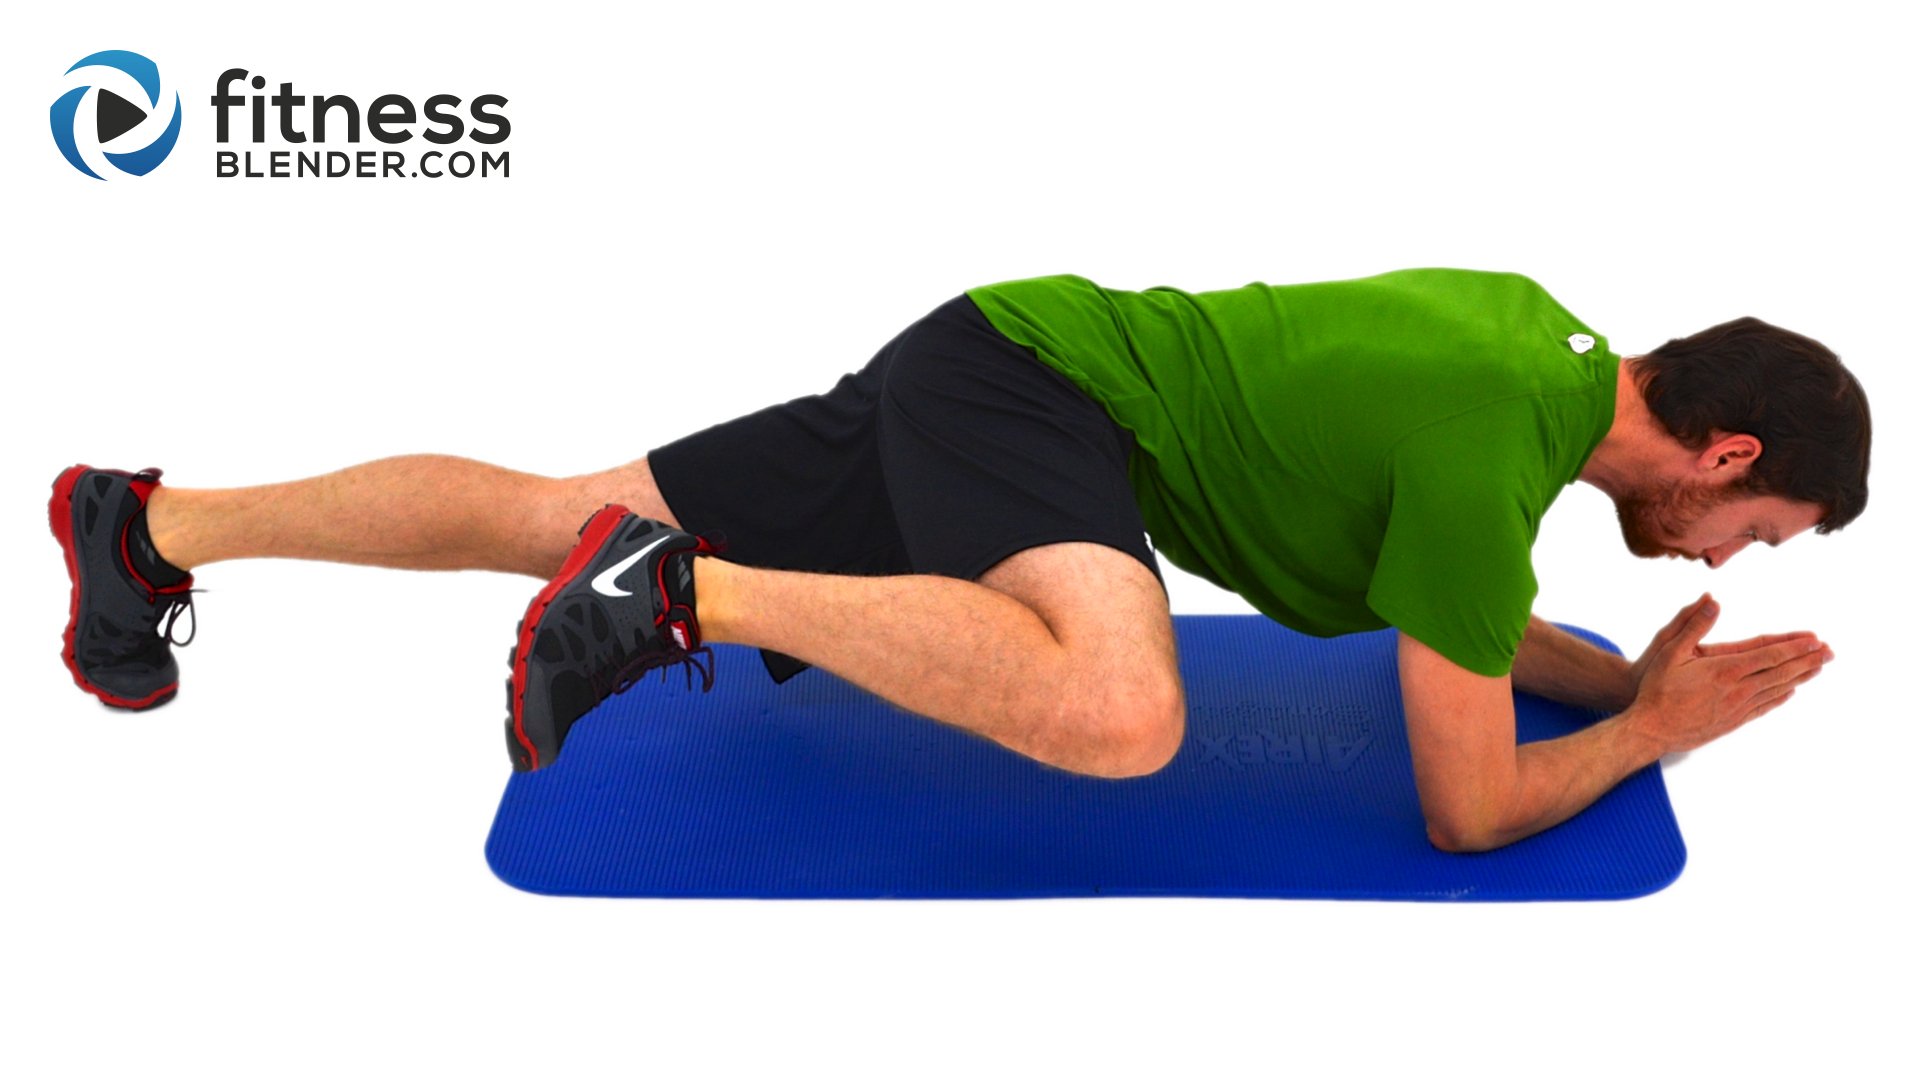 Advanced Core Burning Workout Challenging 20 Minute Abs